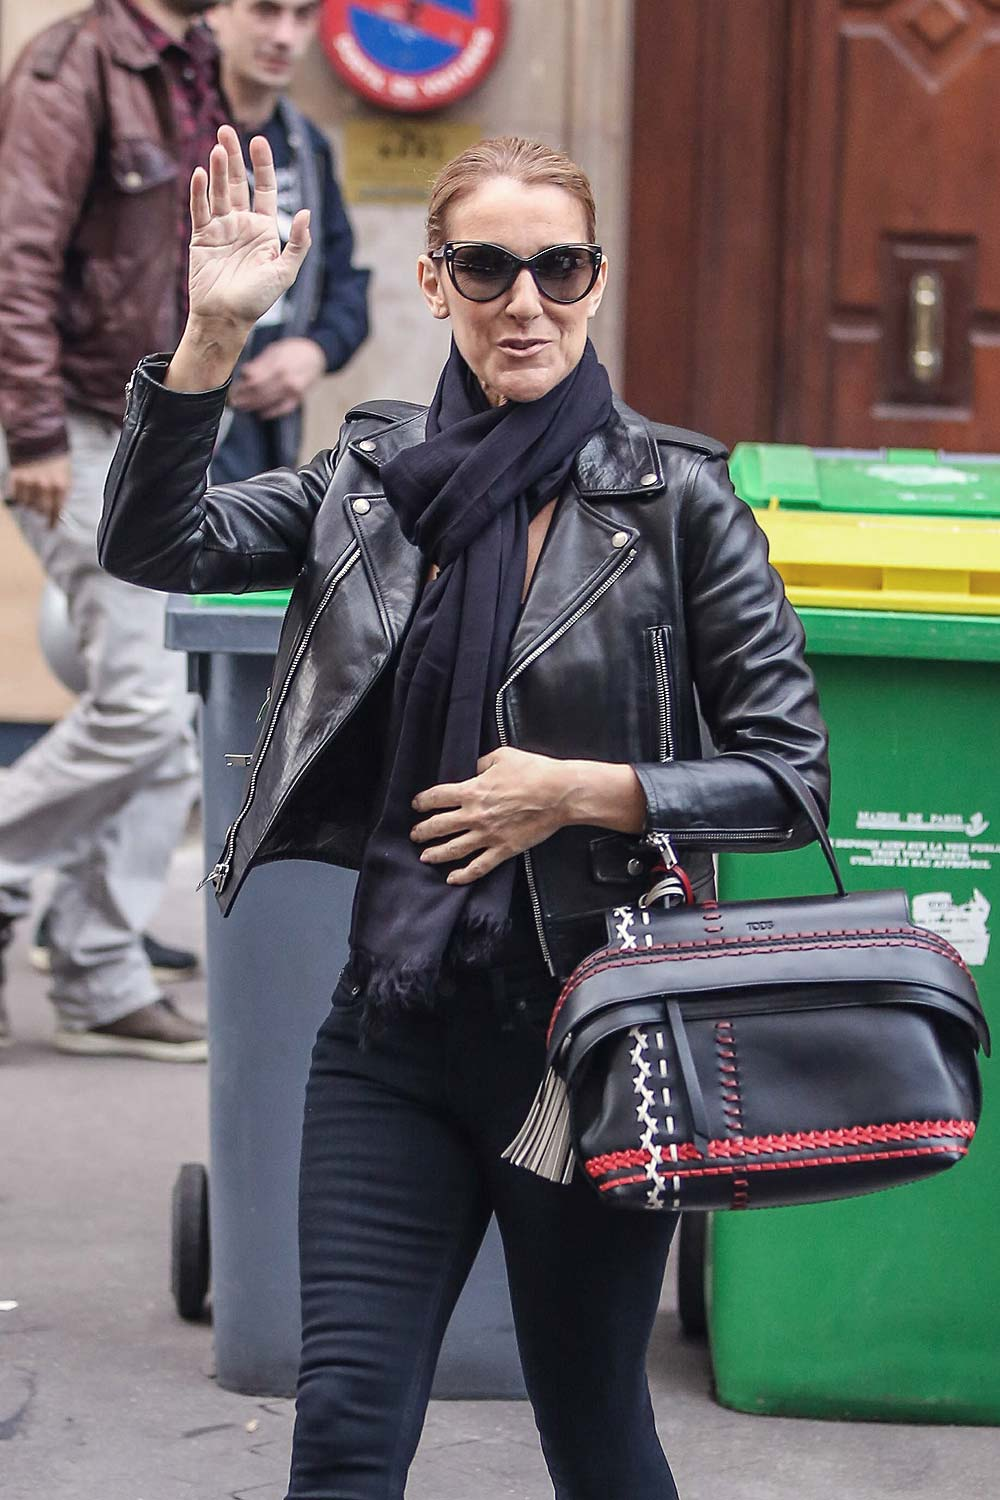 Celine Dion leaves her hotel to do a photoshoot